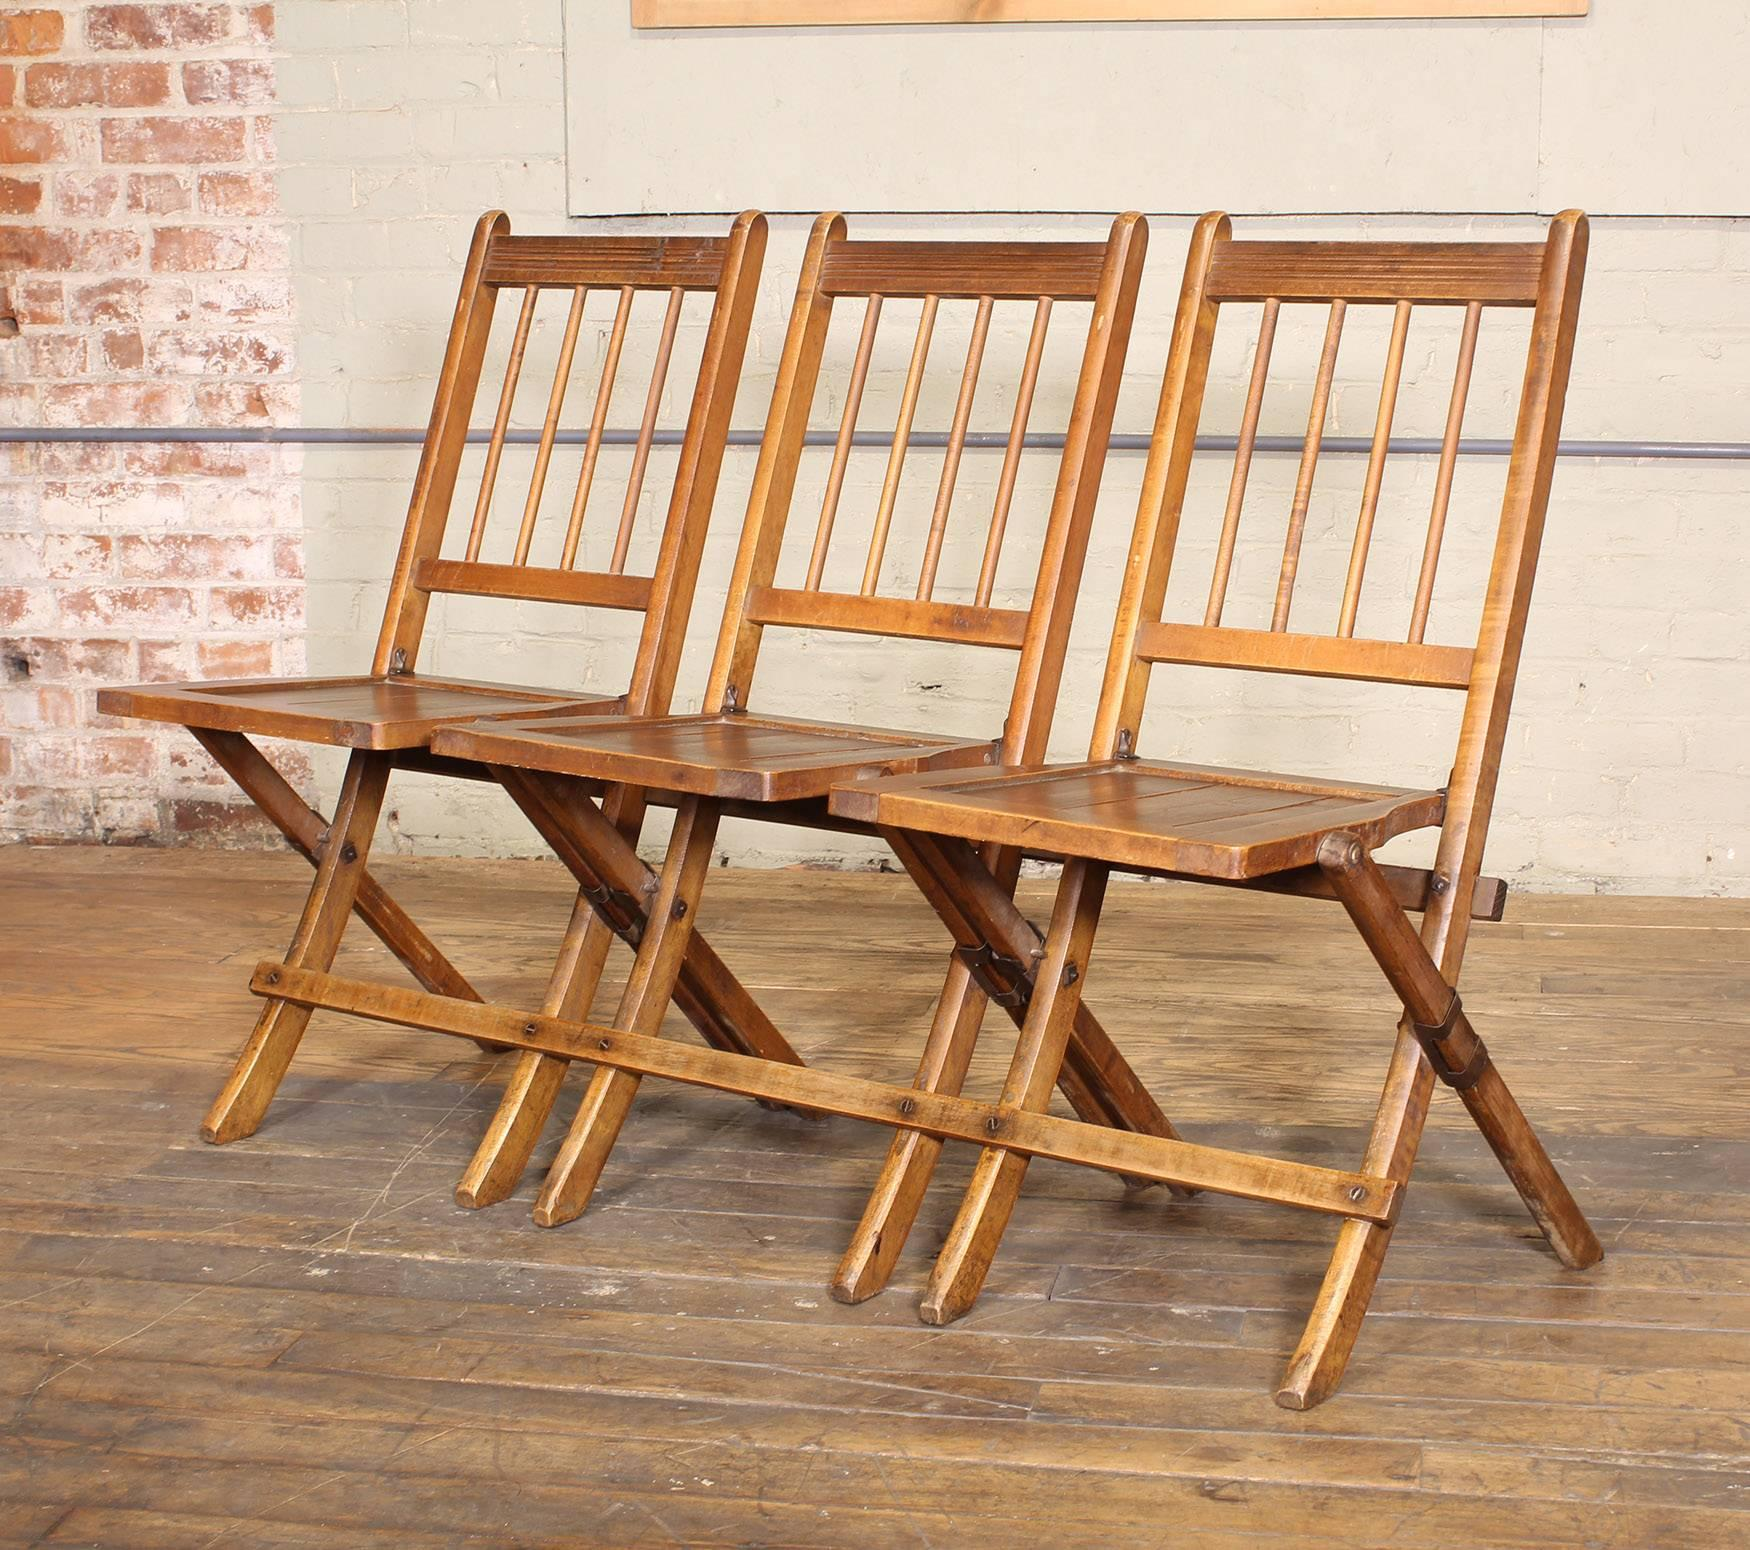 Vintage Set Of Three Tandem Stadium Folding Chairs, Seats, Bench For Sale 3